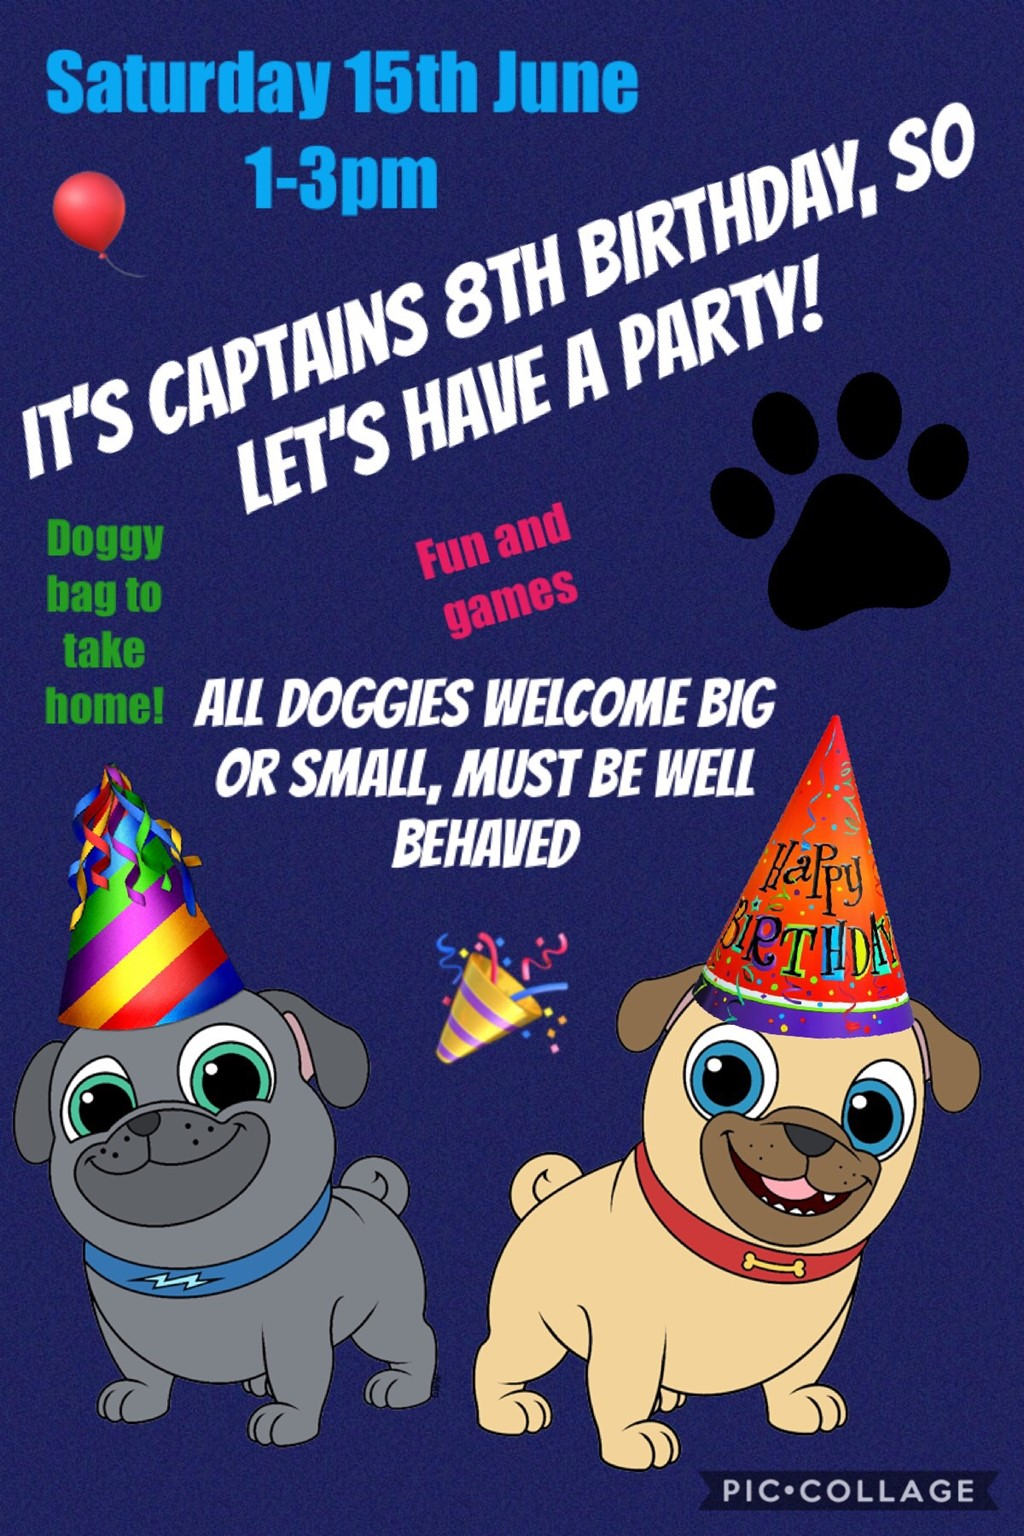 Captain the Pugs 8th Birthday party